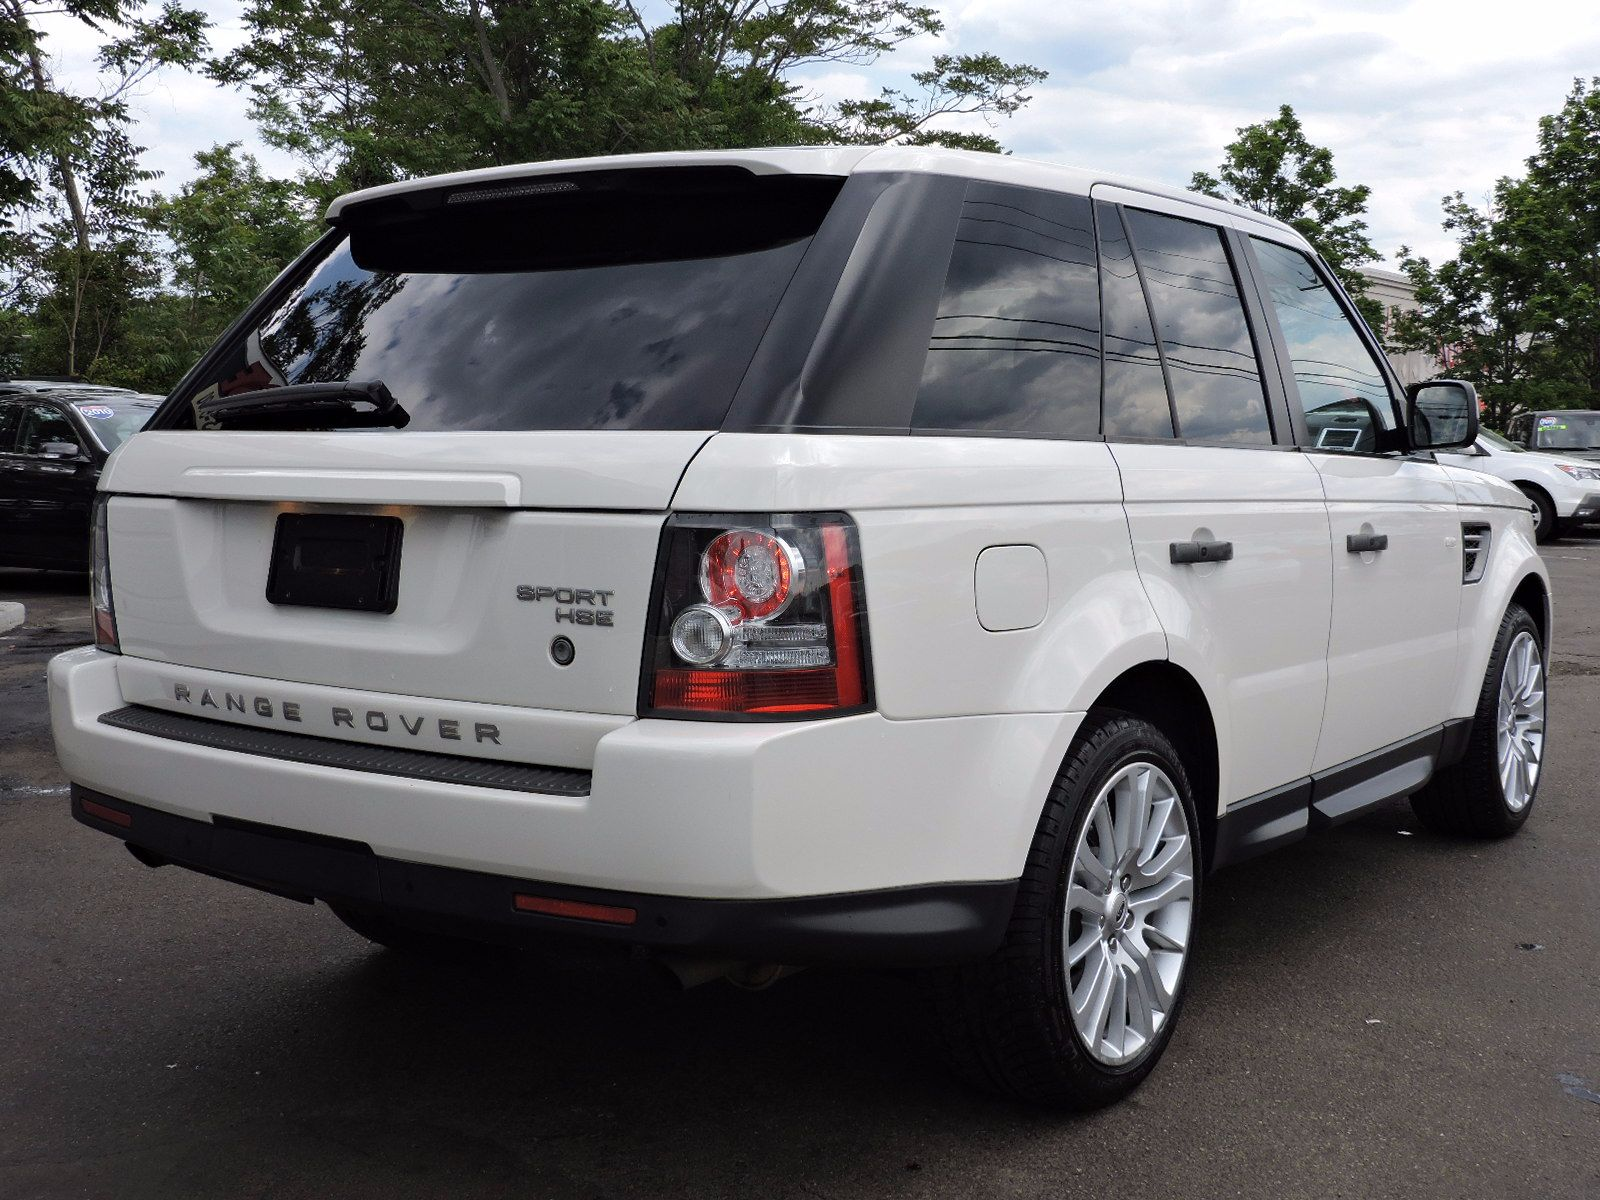 2010 Land Rover Range Rover Sport LUX - All Wheel Drive - Navigation